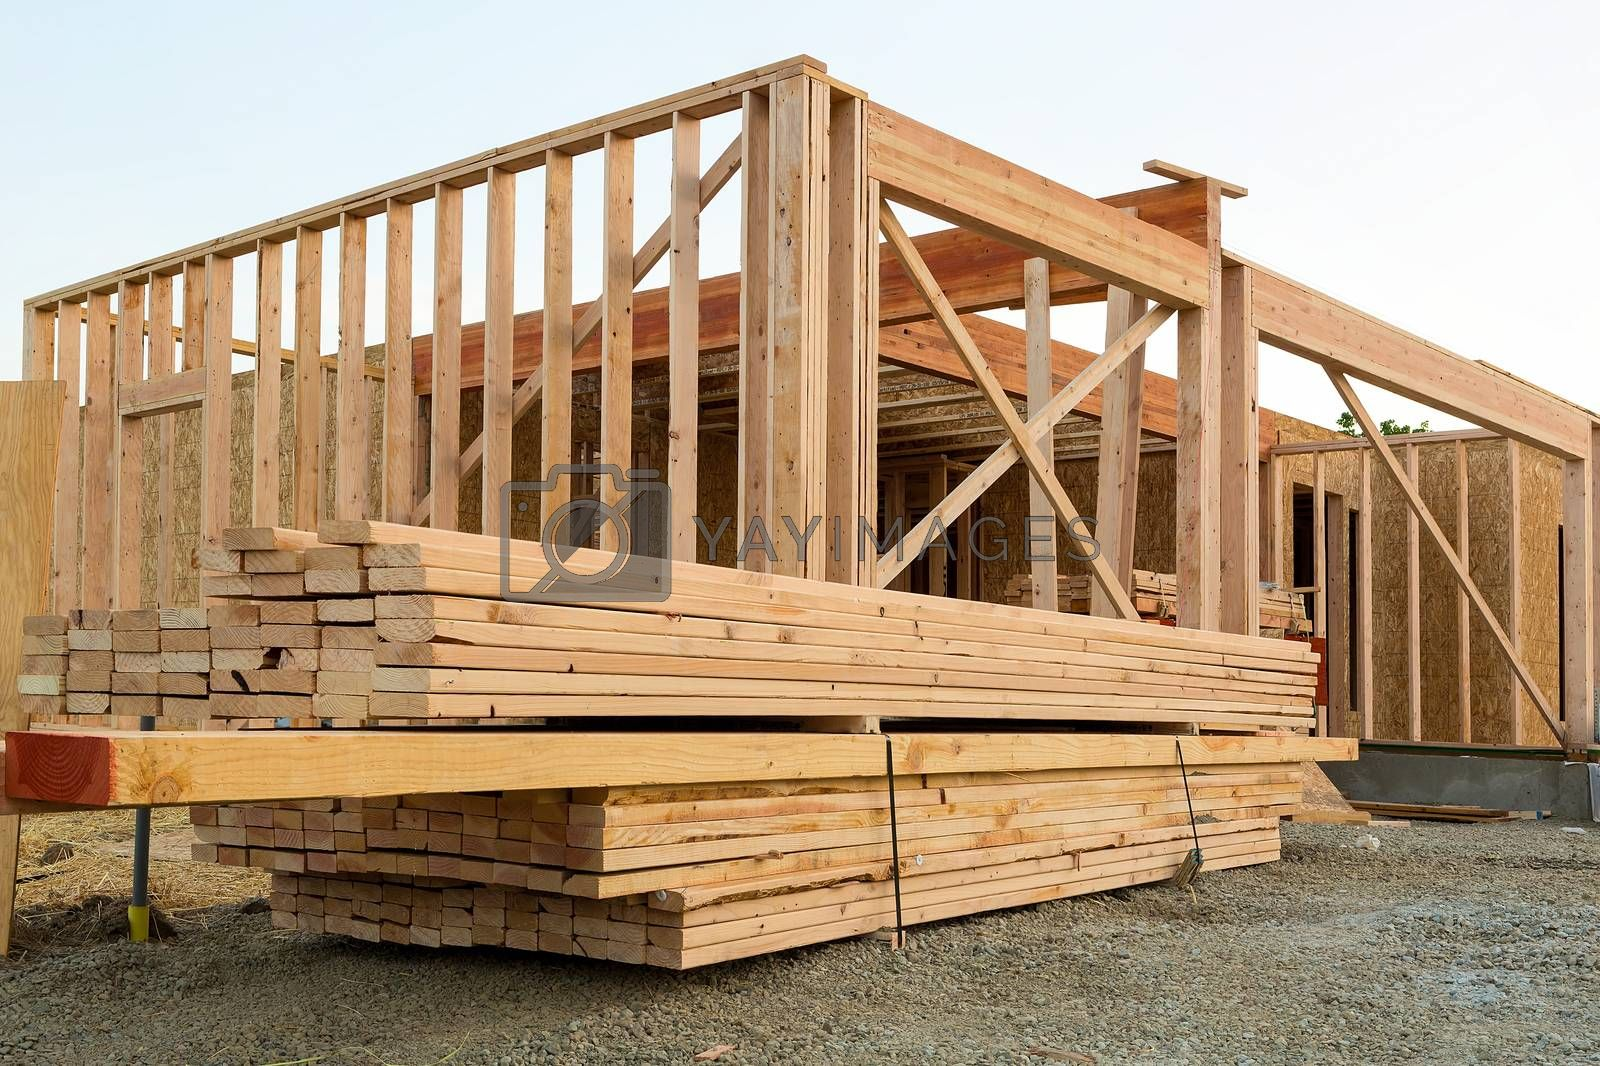 Wood Lumber Studs and Beams by House Construction Framing